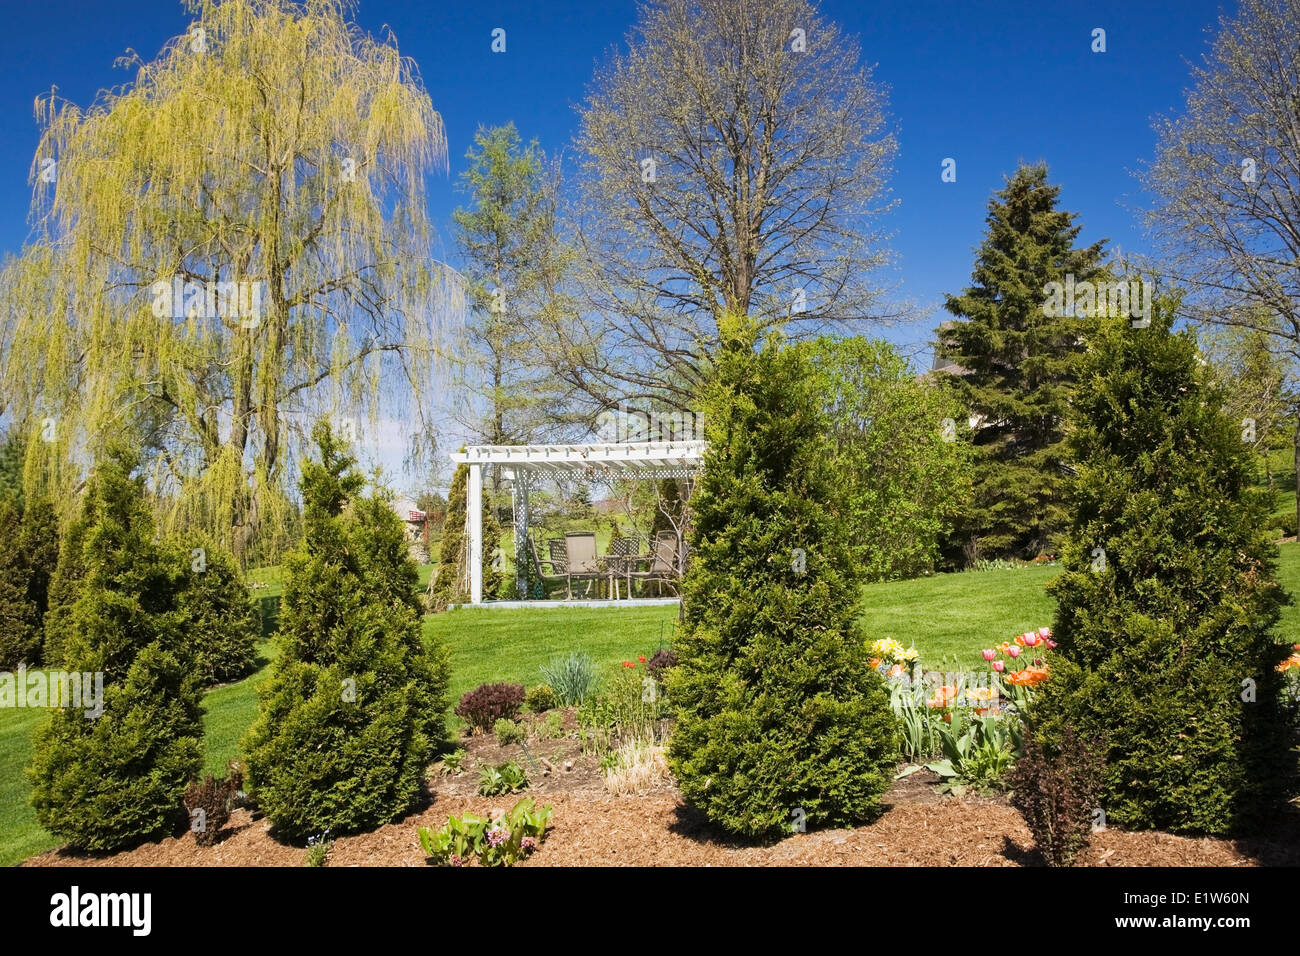 Overall view the flower beds with cedar trees grass slopes the pergola in a landscaped residential backyard garden - Stock Image